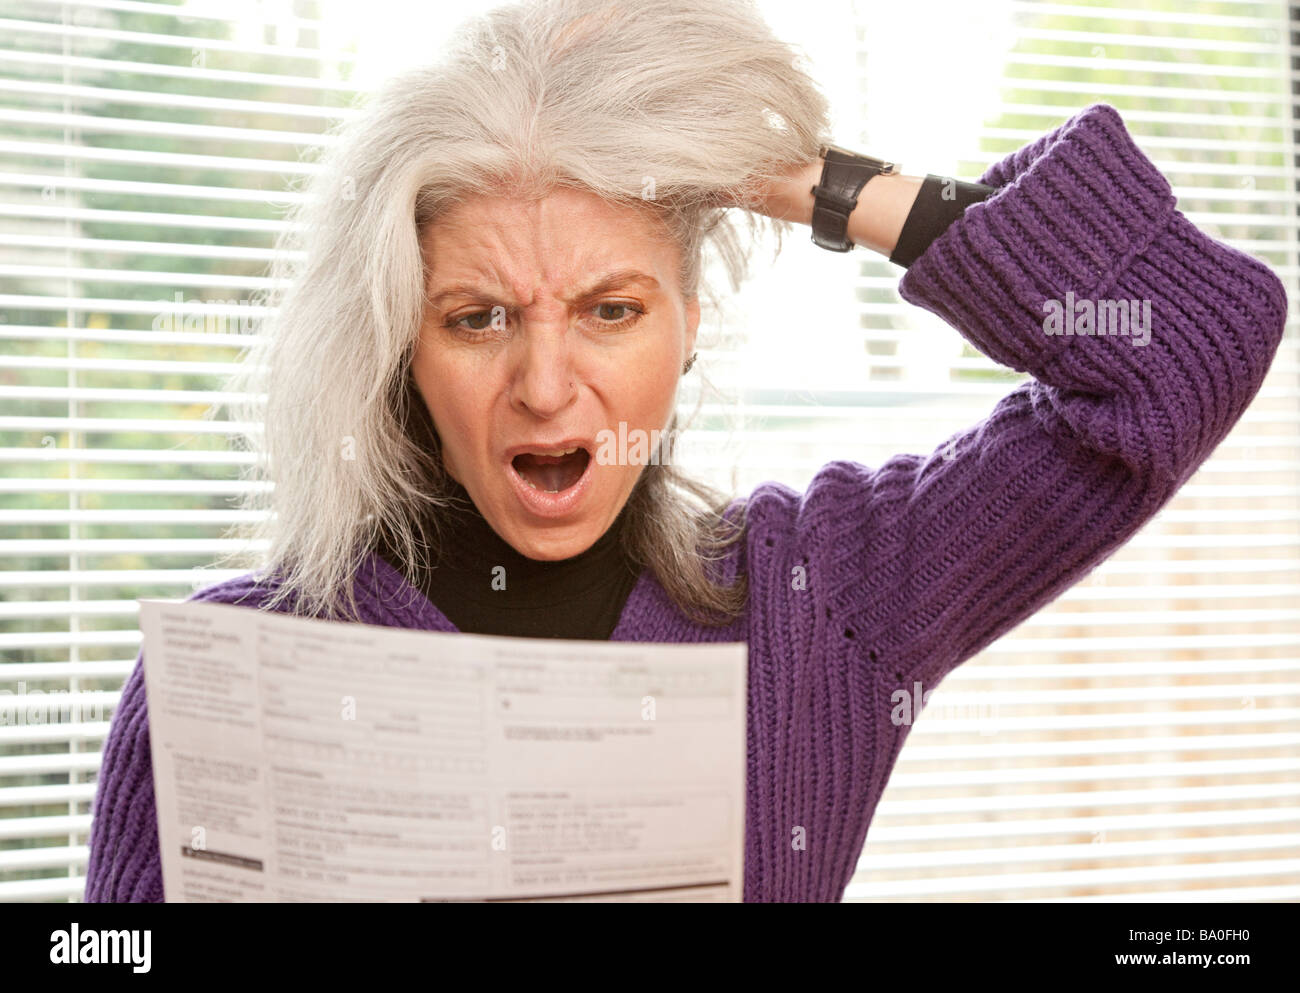 woman shocked at reading letter / bill / bank statement - Stock Image